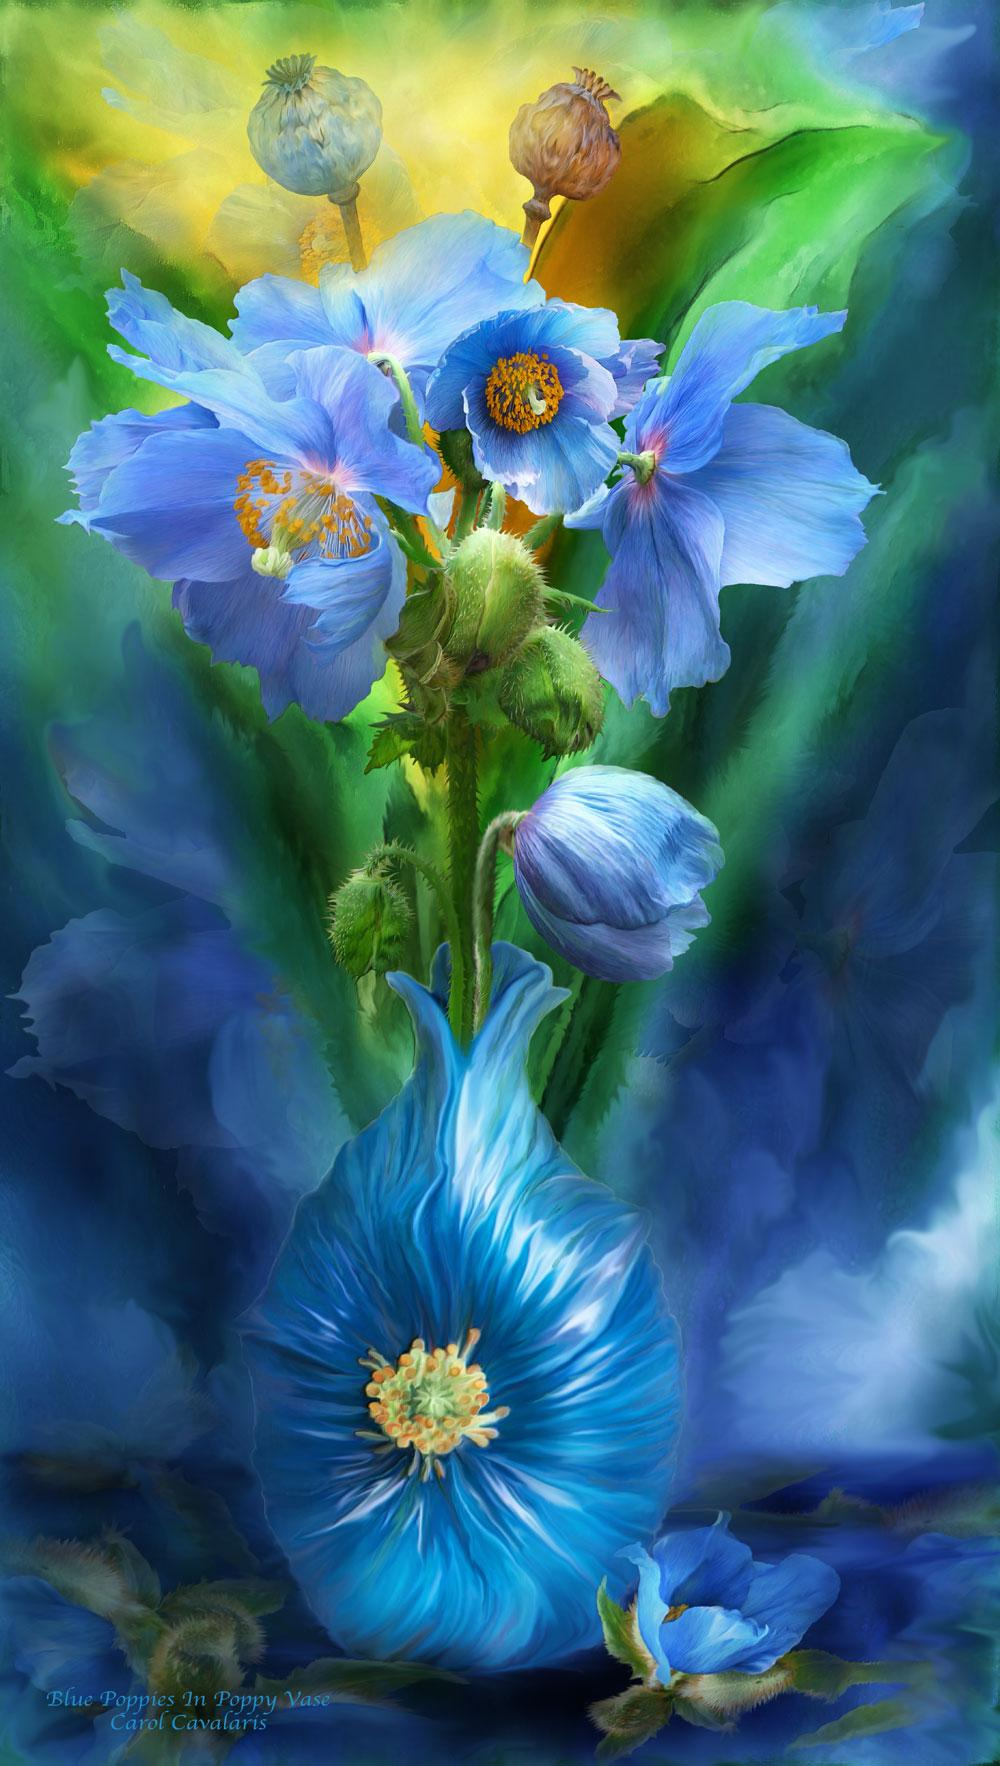 Blue Poppies In Poppy Vase